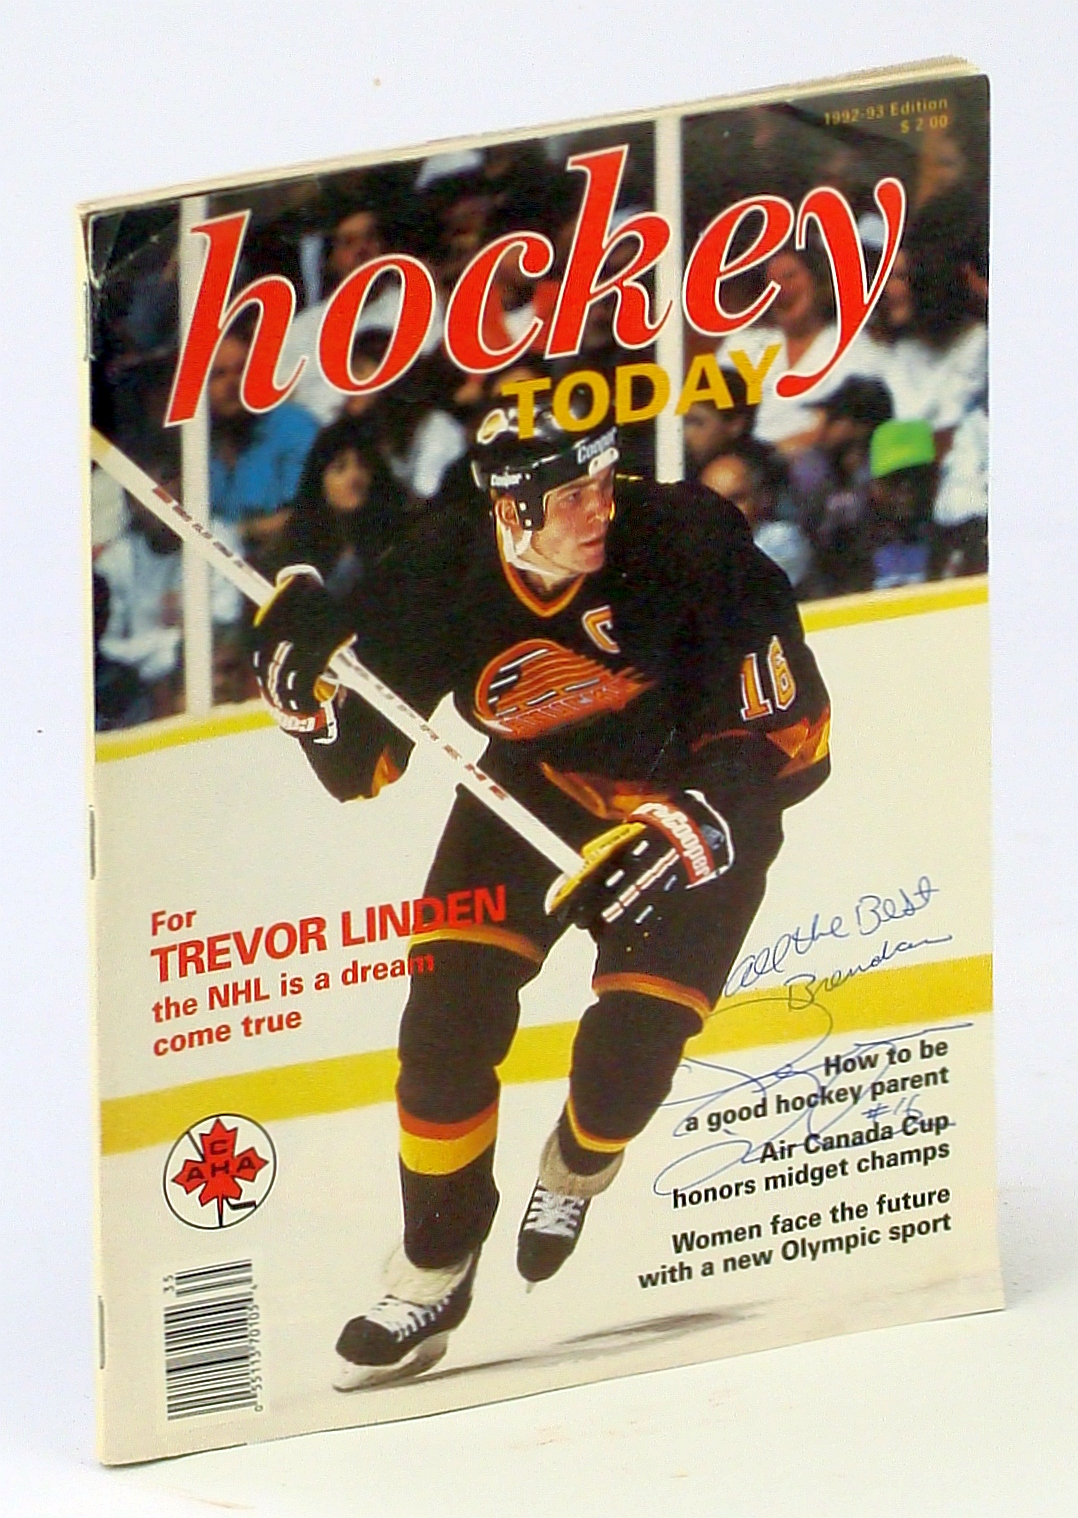 Image for Hockey Today Magazine, 1992-92 Edition: Signed Trevor Linden Cover Photo